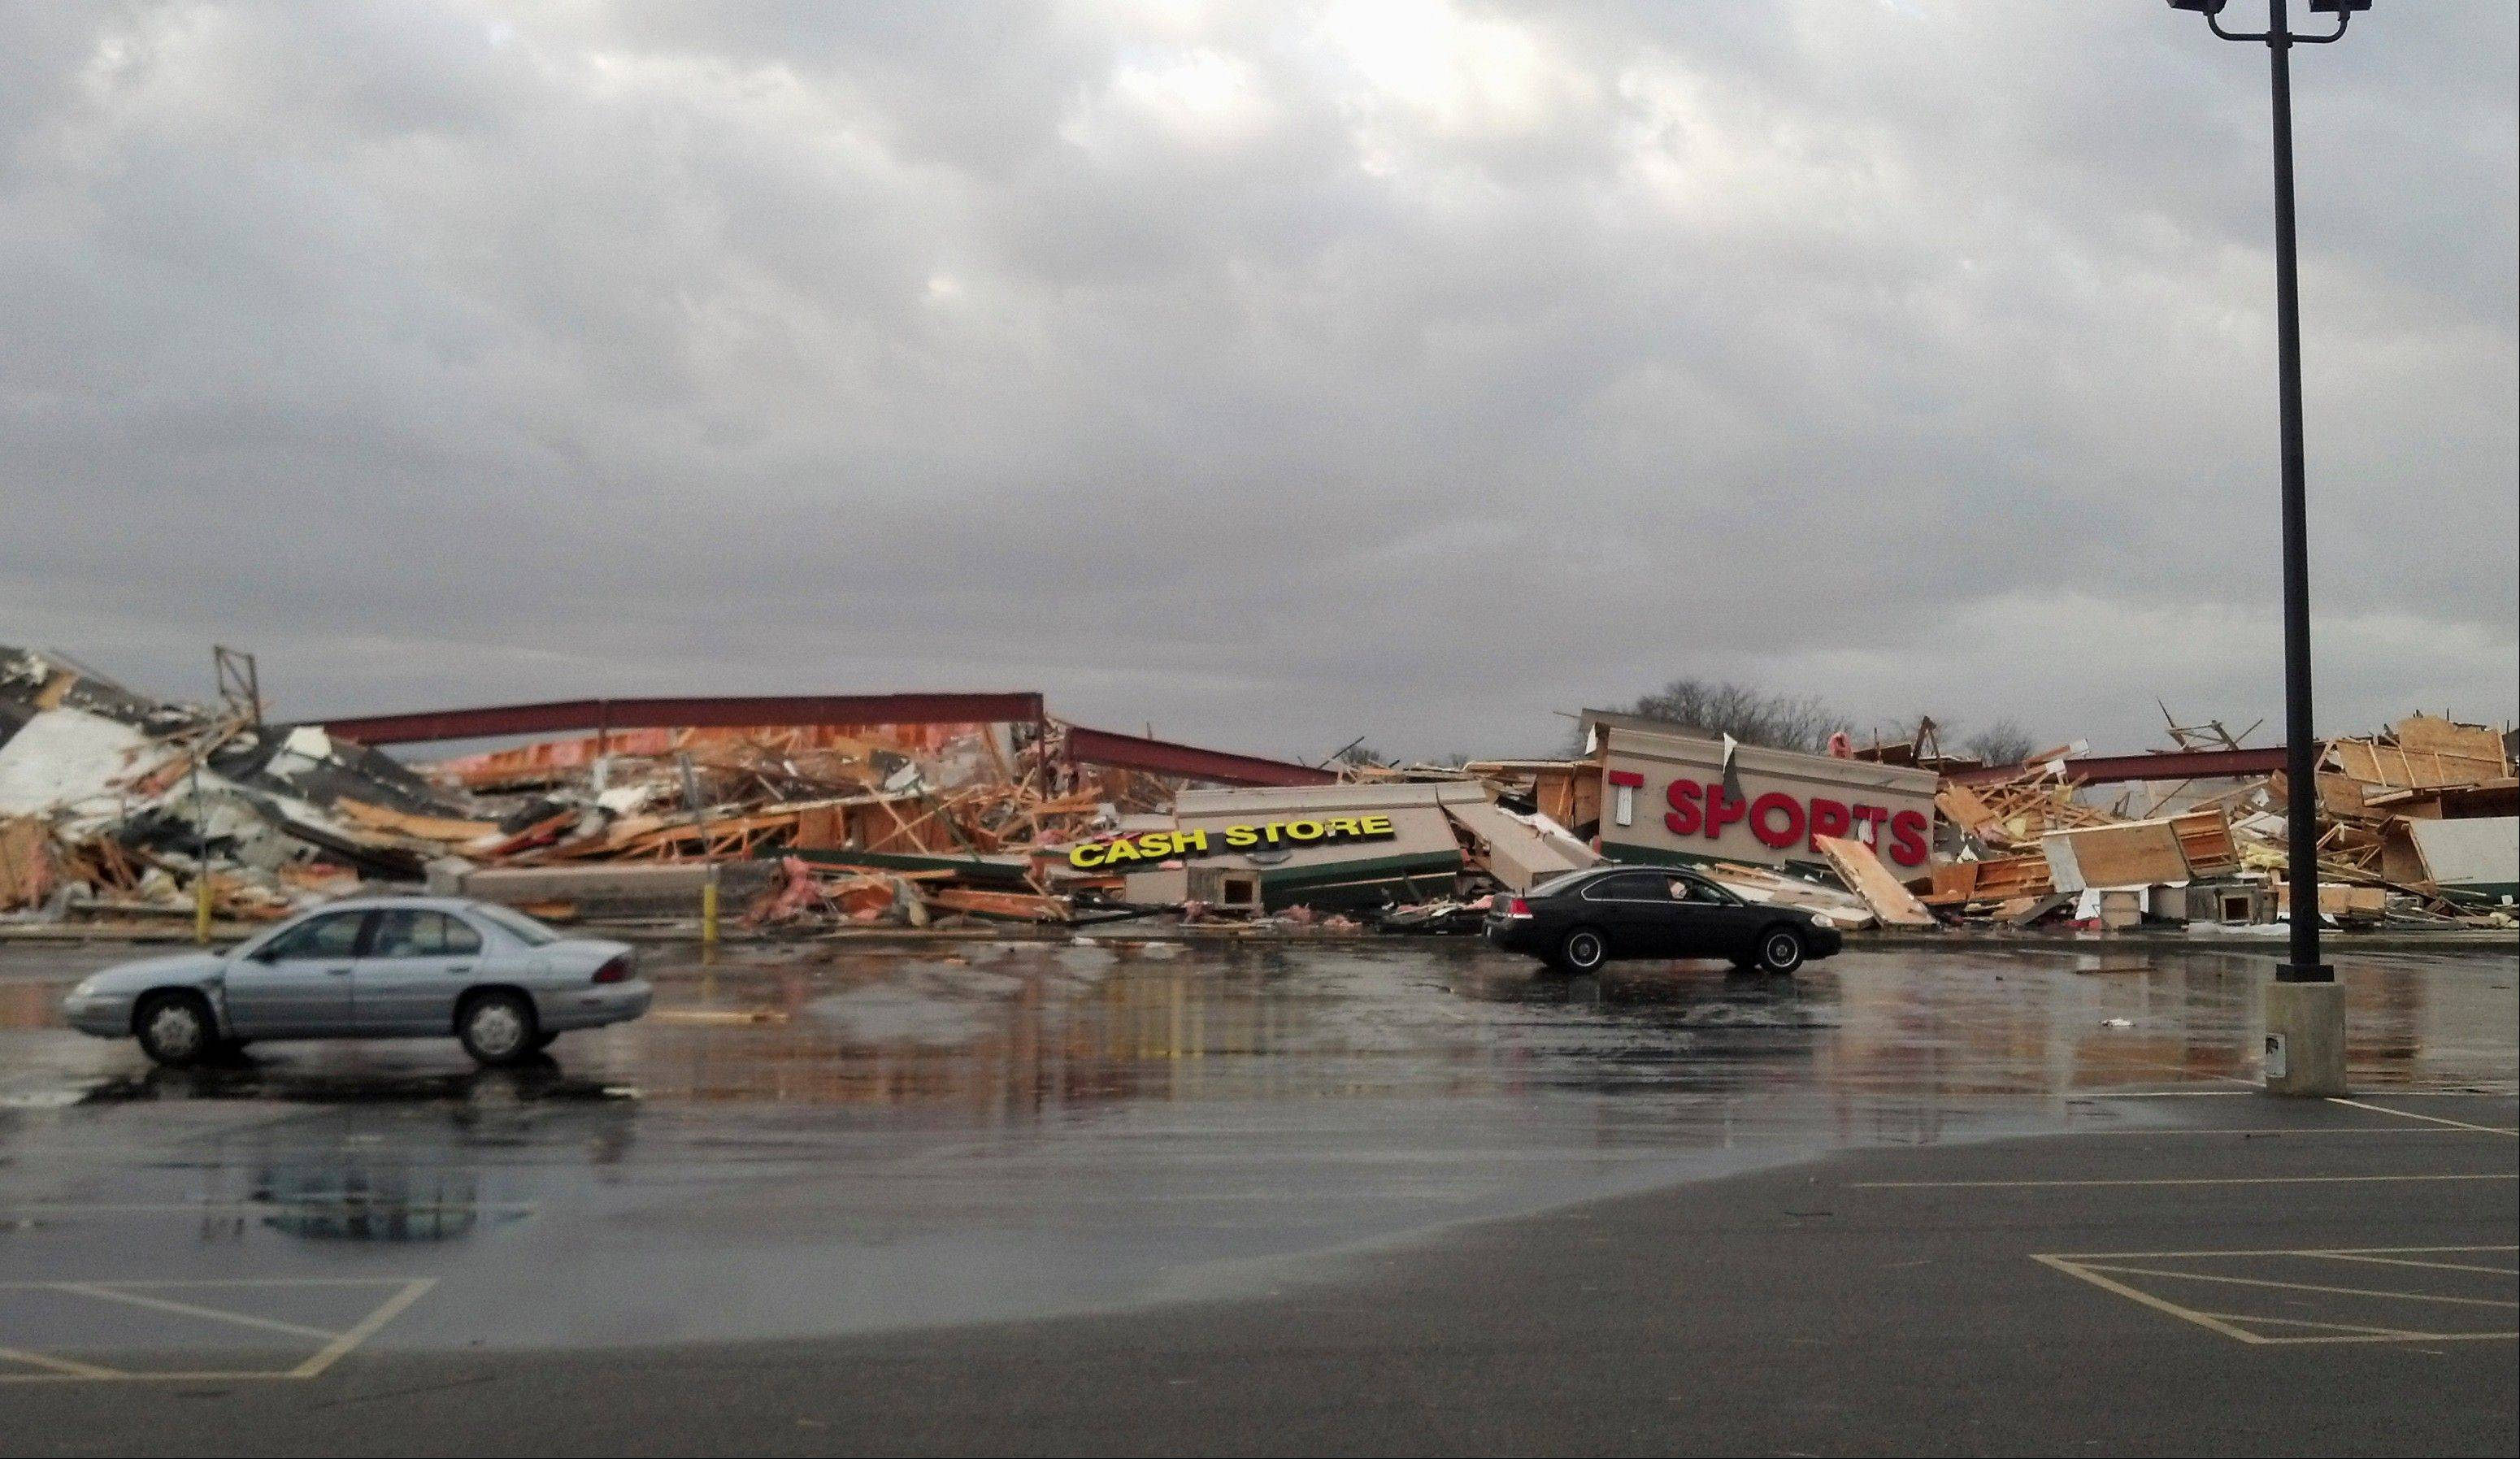 In this image made with a cellphone, damage is seen to a strip mall in Harrisburg, Ill., after a severe storm swept through the area early Wednesday morning, Feb. 29, 2012. A hospital administrator in Harrisburg says at least three people were killed in the storm that swept through the region.